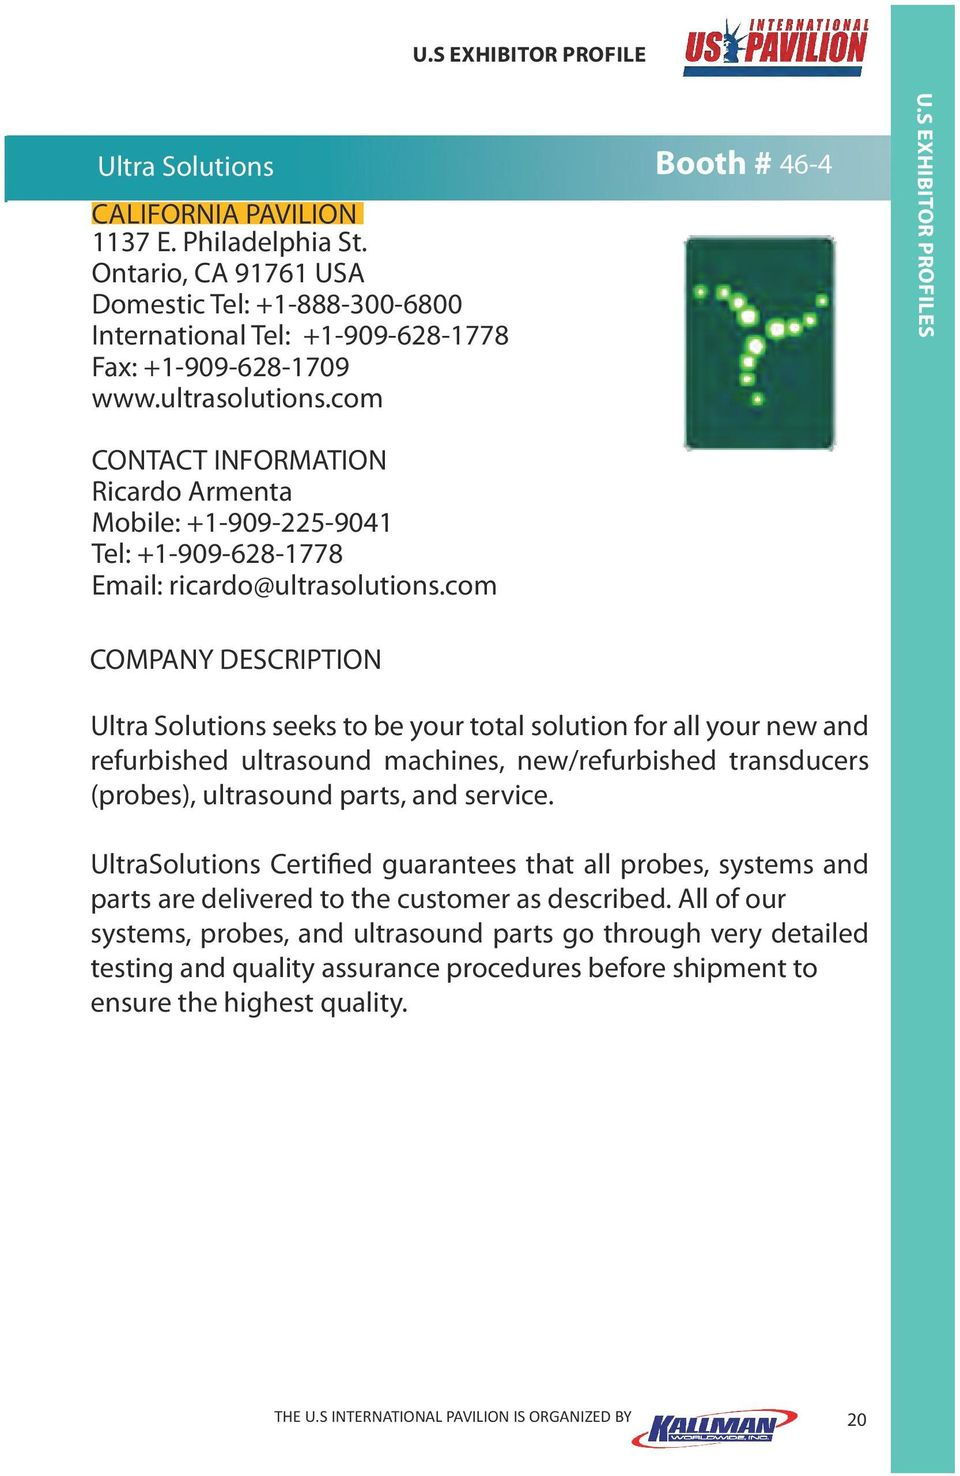 com Ultra Solutions seeks to be your total solution for all your new and refurbished ultrasound machines, new/refurbished transducers (probes), ultrasound parts, and service.